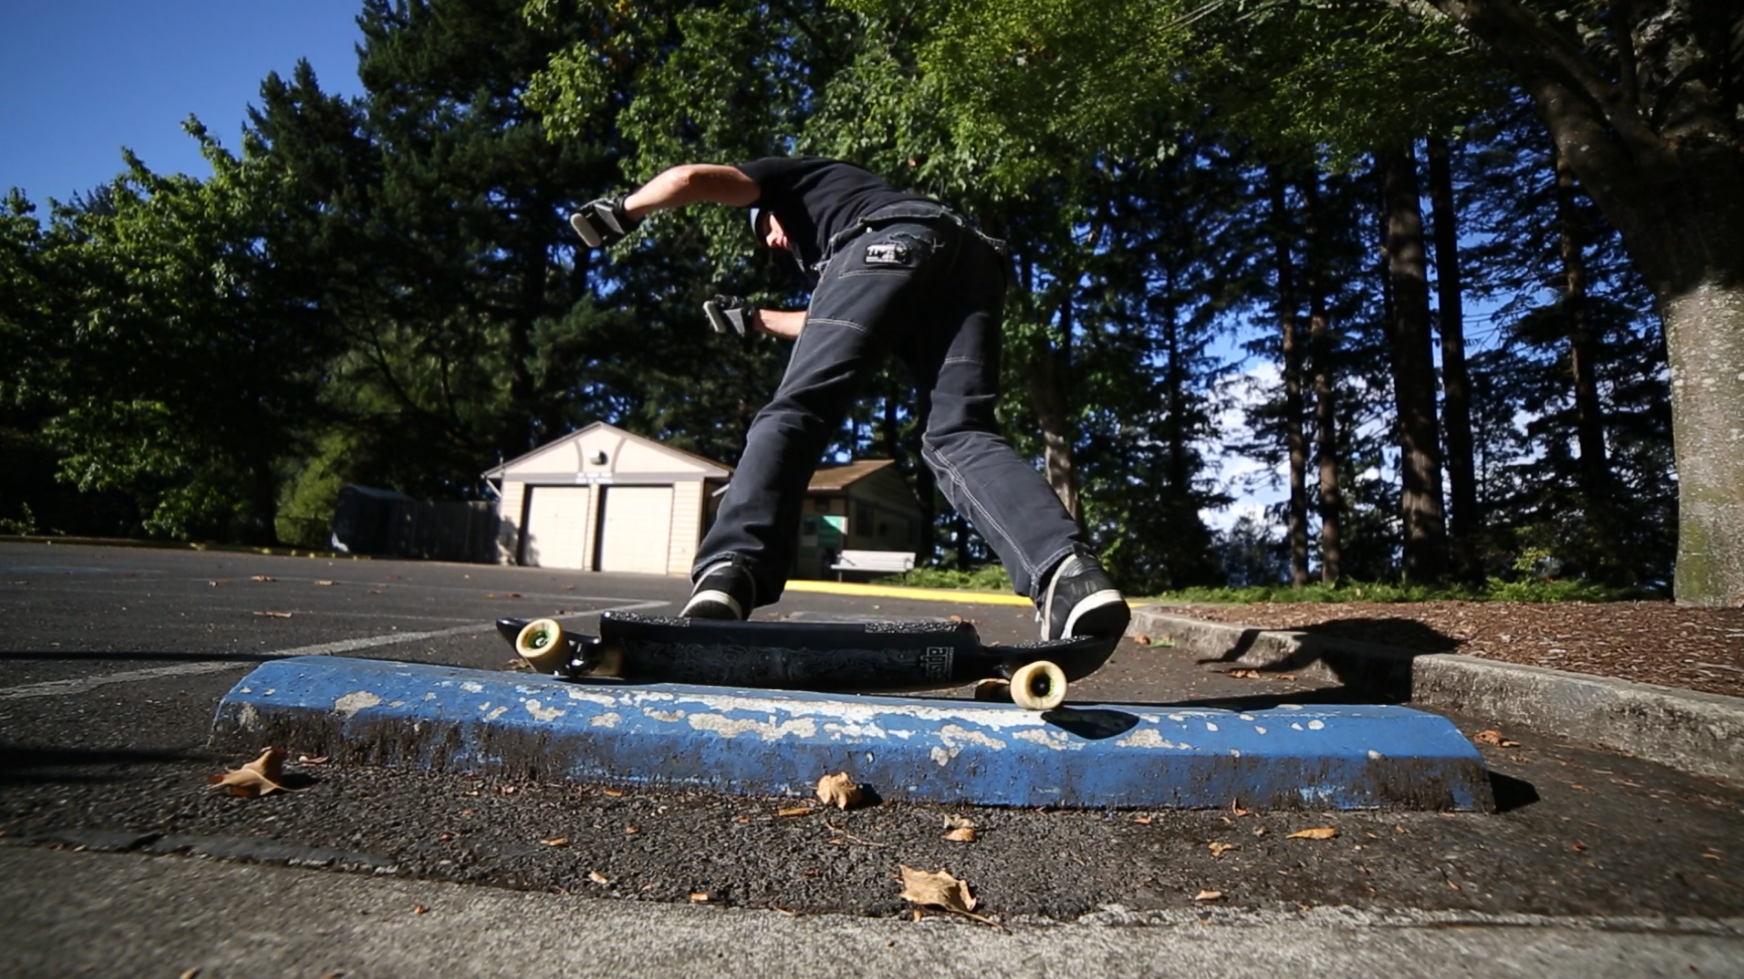 Backside slappy grind on a parking block.